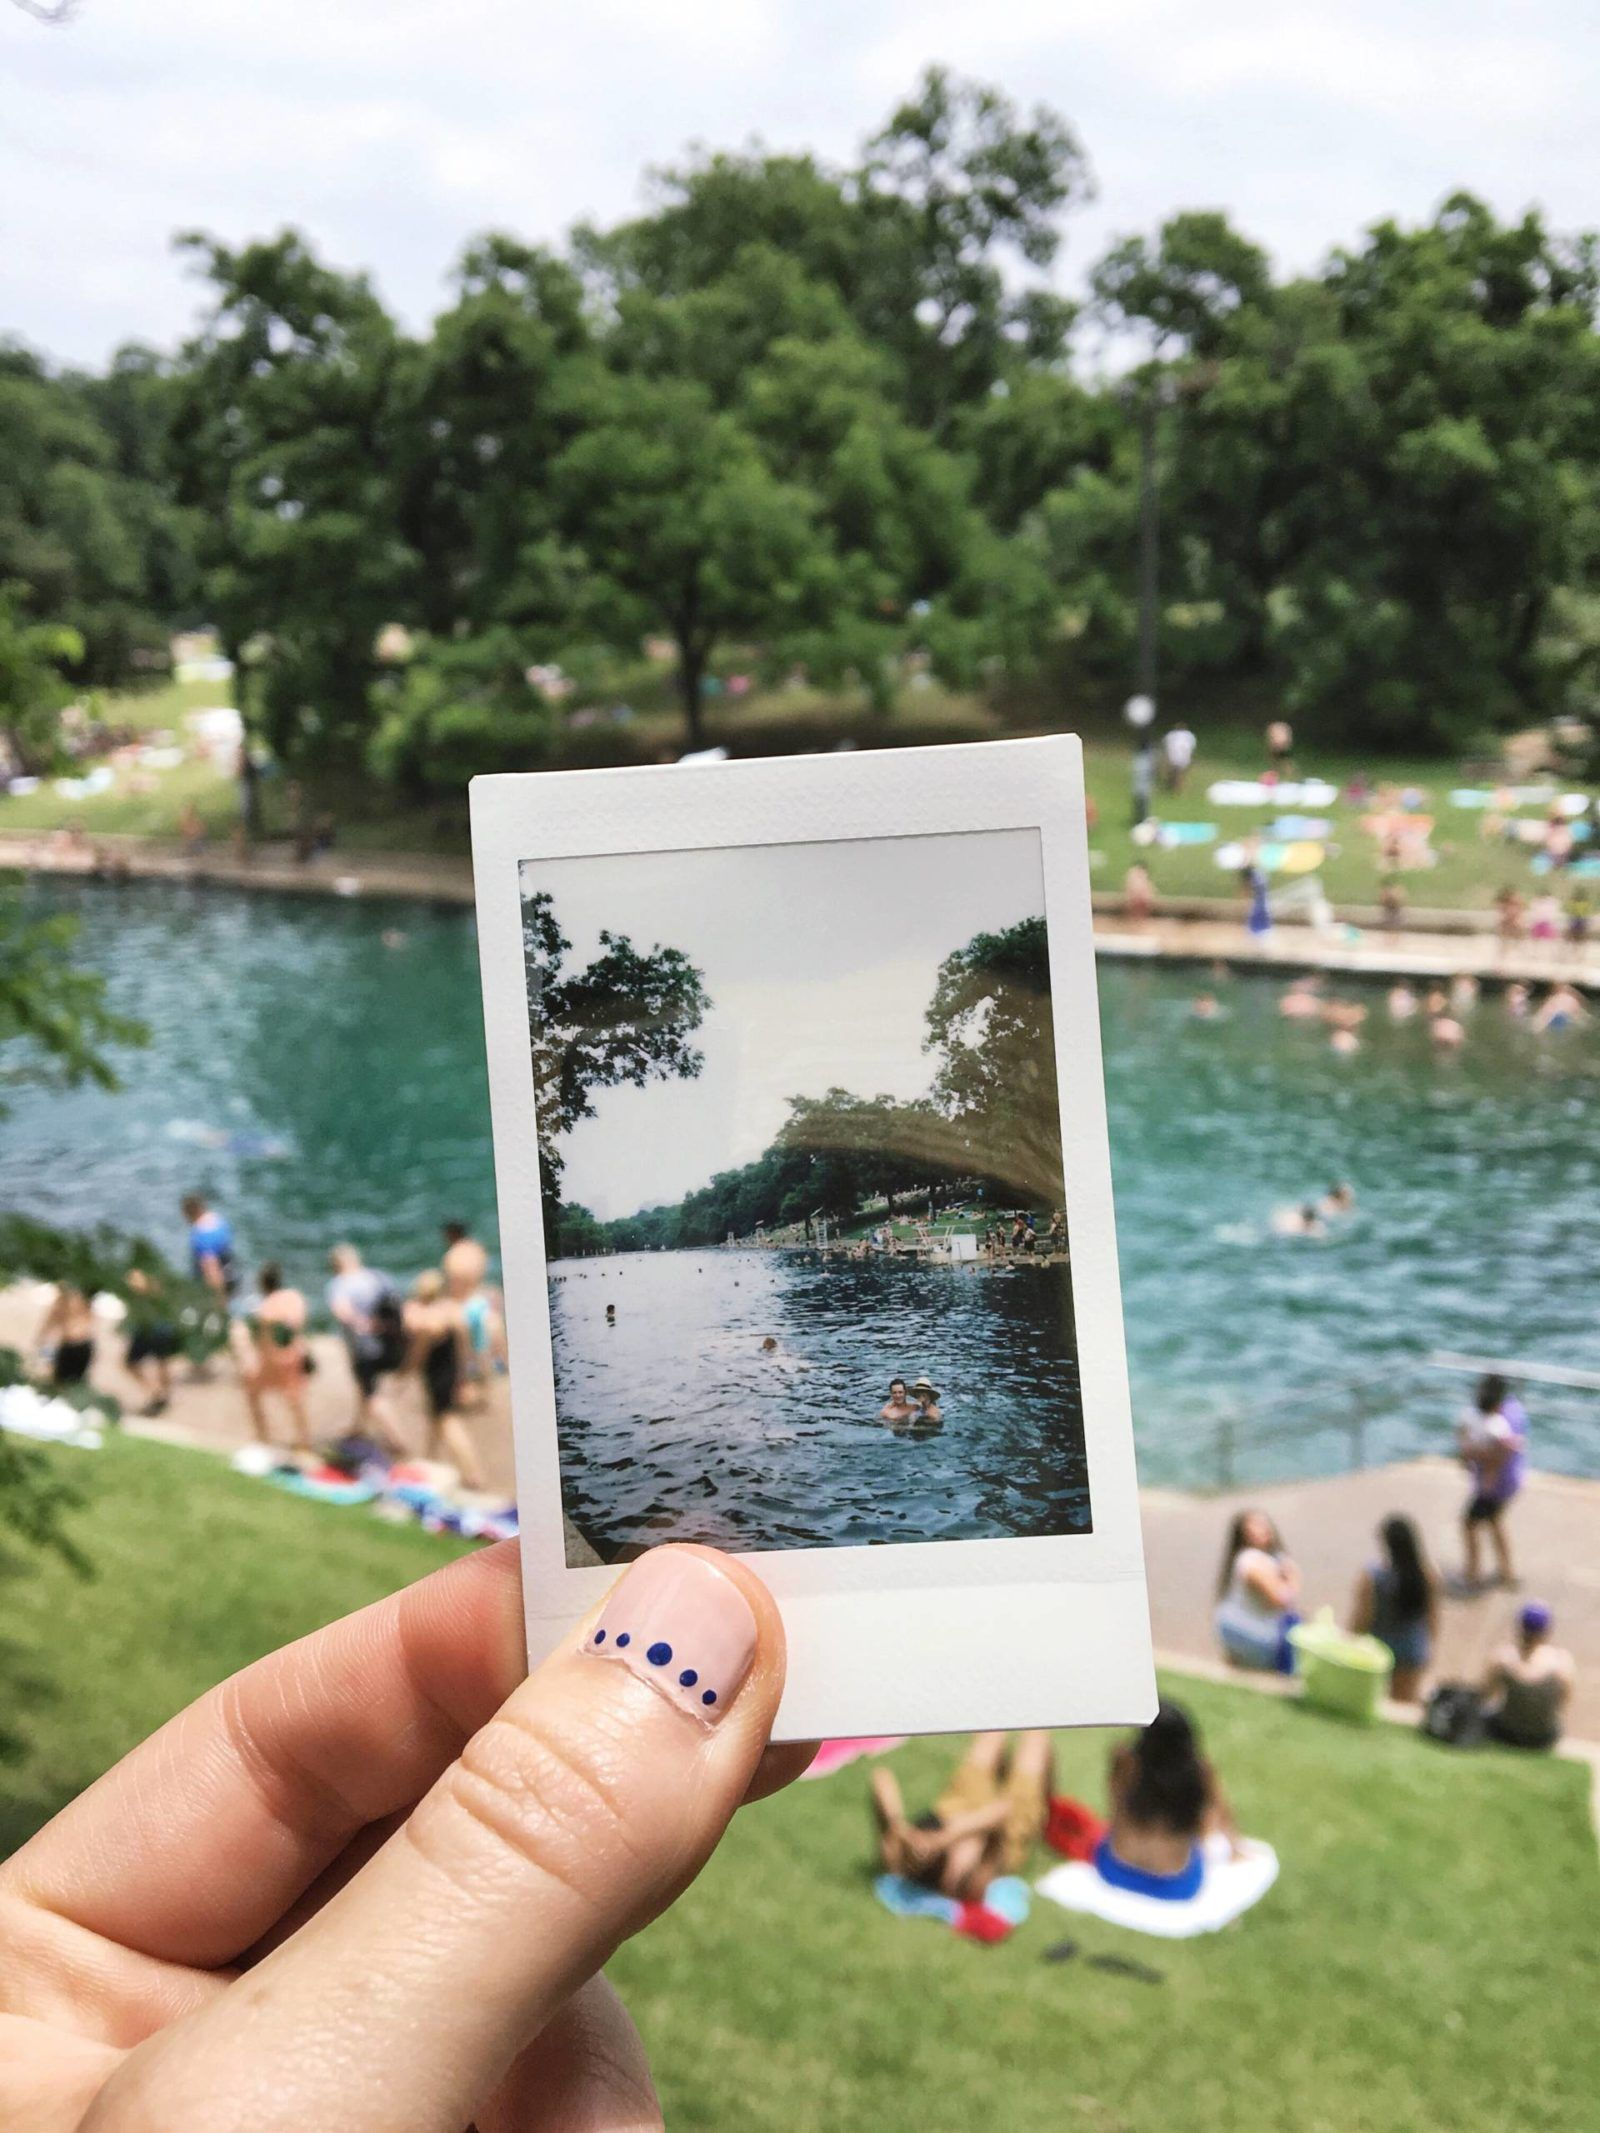 Memorial Day Weekend At Barton Springs Pool In Austin Texas Weekend In Austin Best Weekend Trips Texas Hill Country